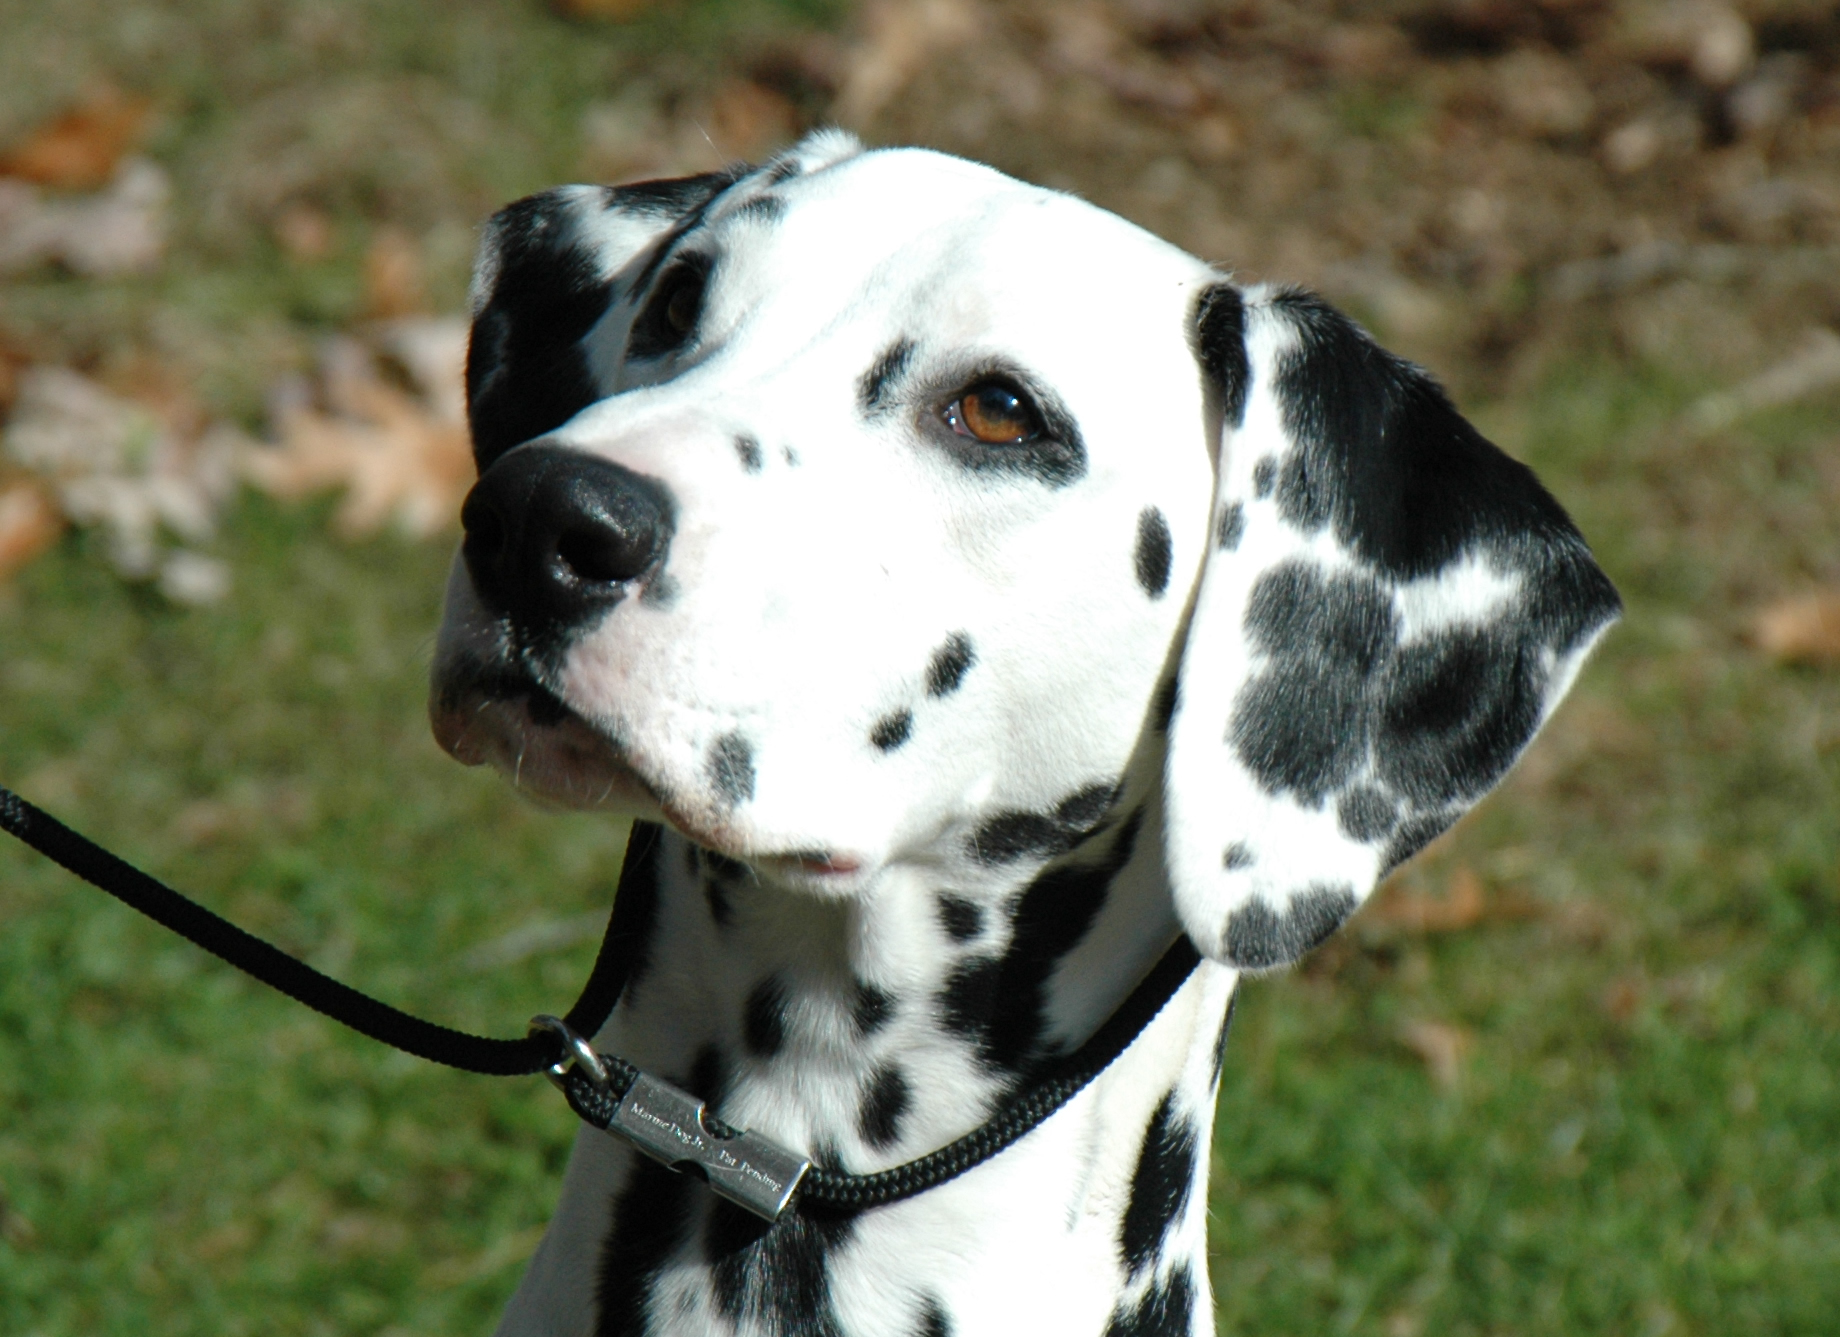 Lovely Dalmatian dog  wallpaper